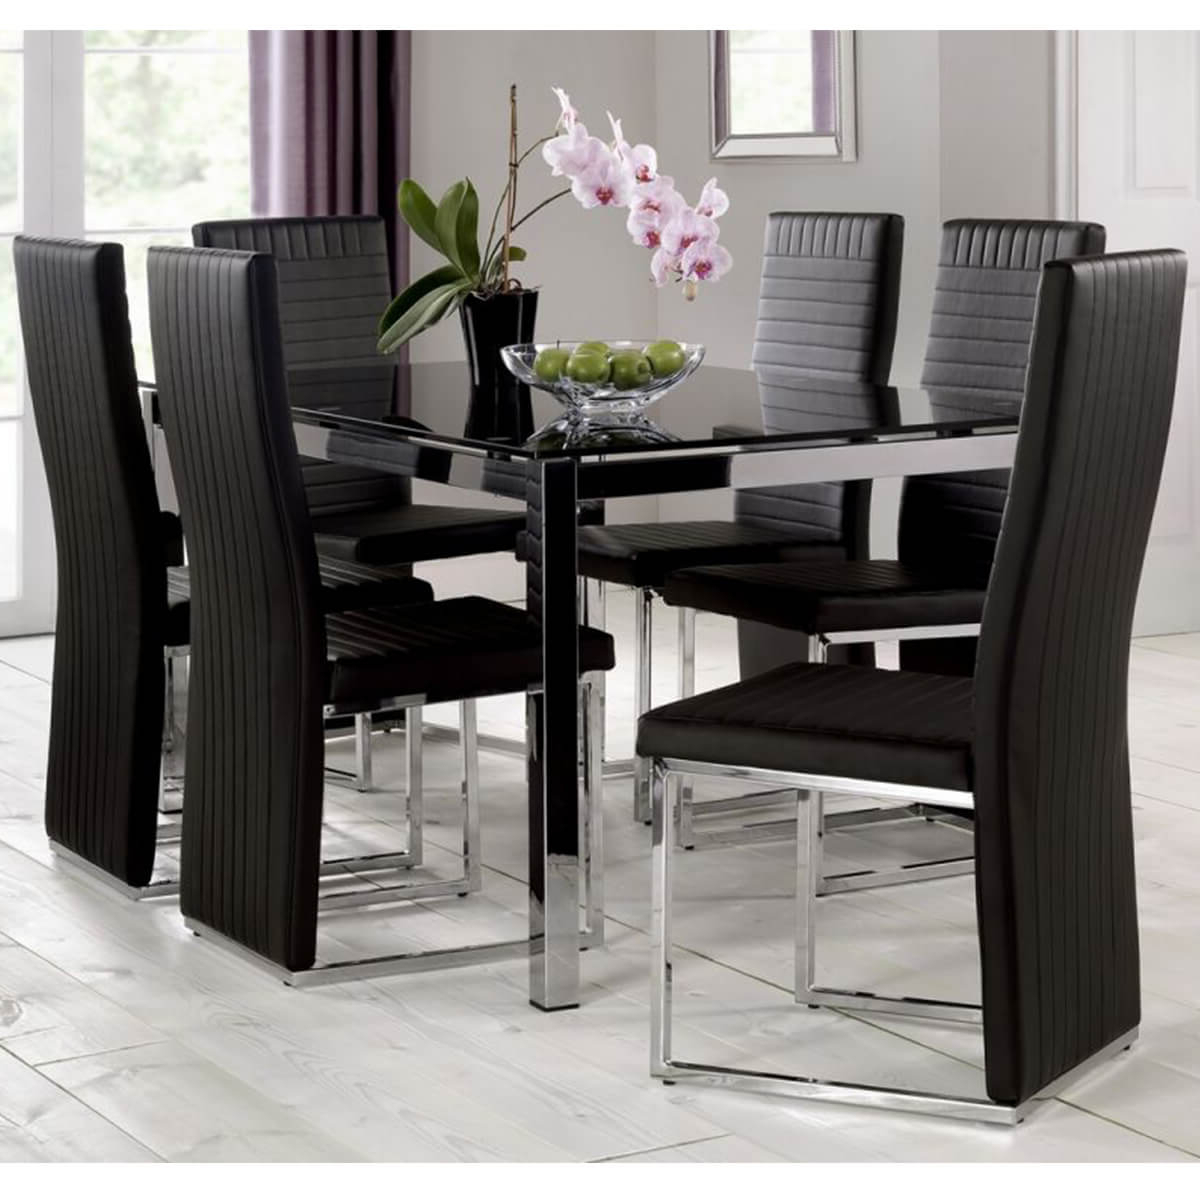 Most Popular 6 Seater Retangular Wood Contemporary Dining Tables Intended For Tempo Black Dining Table With Black Chairs (View 16 of 25)